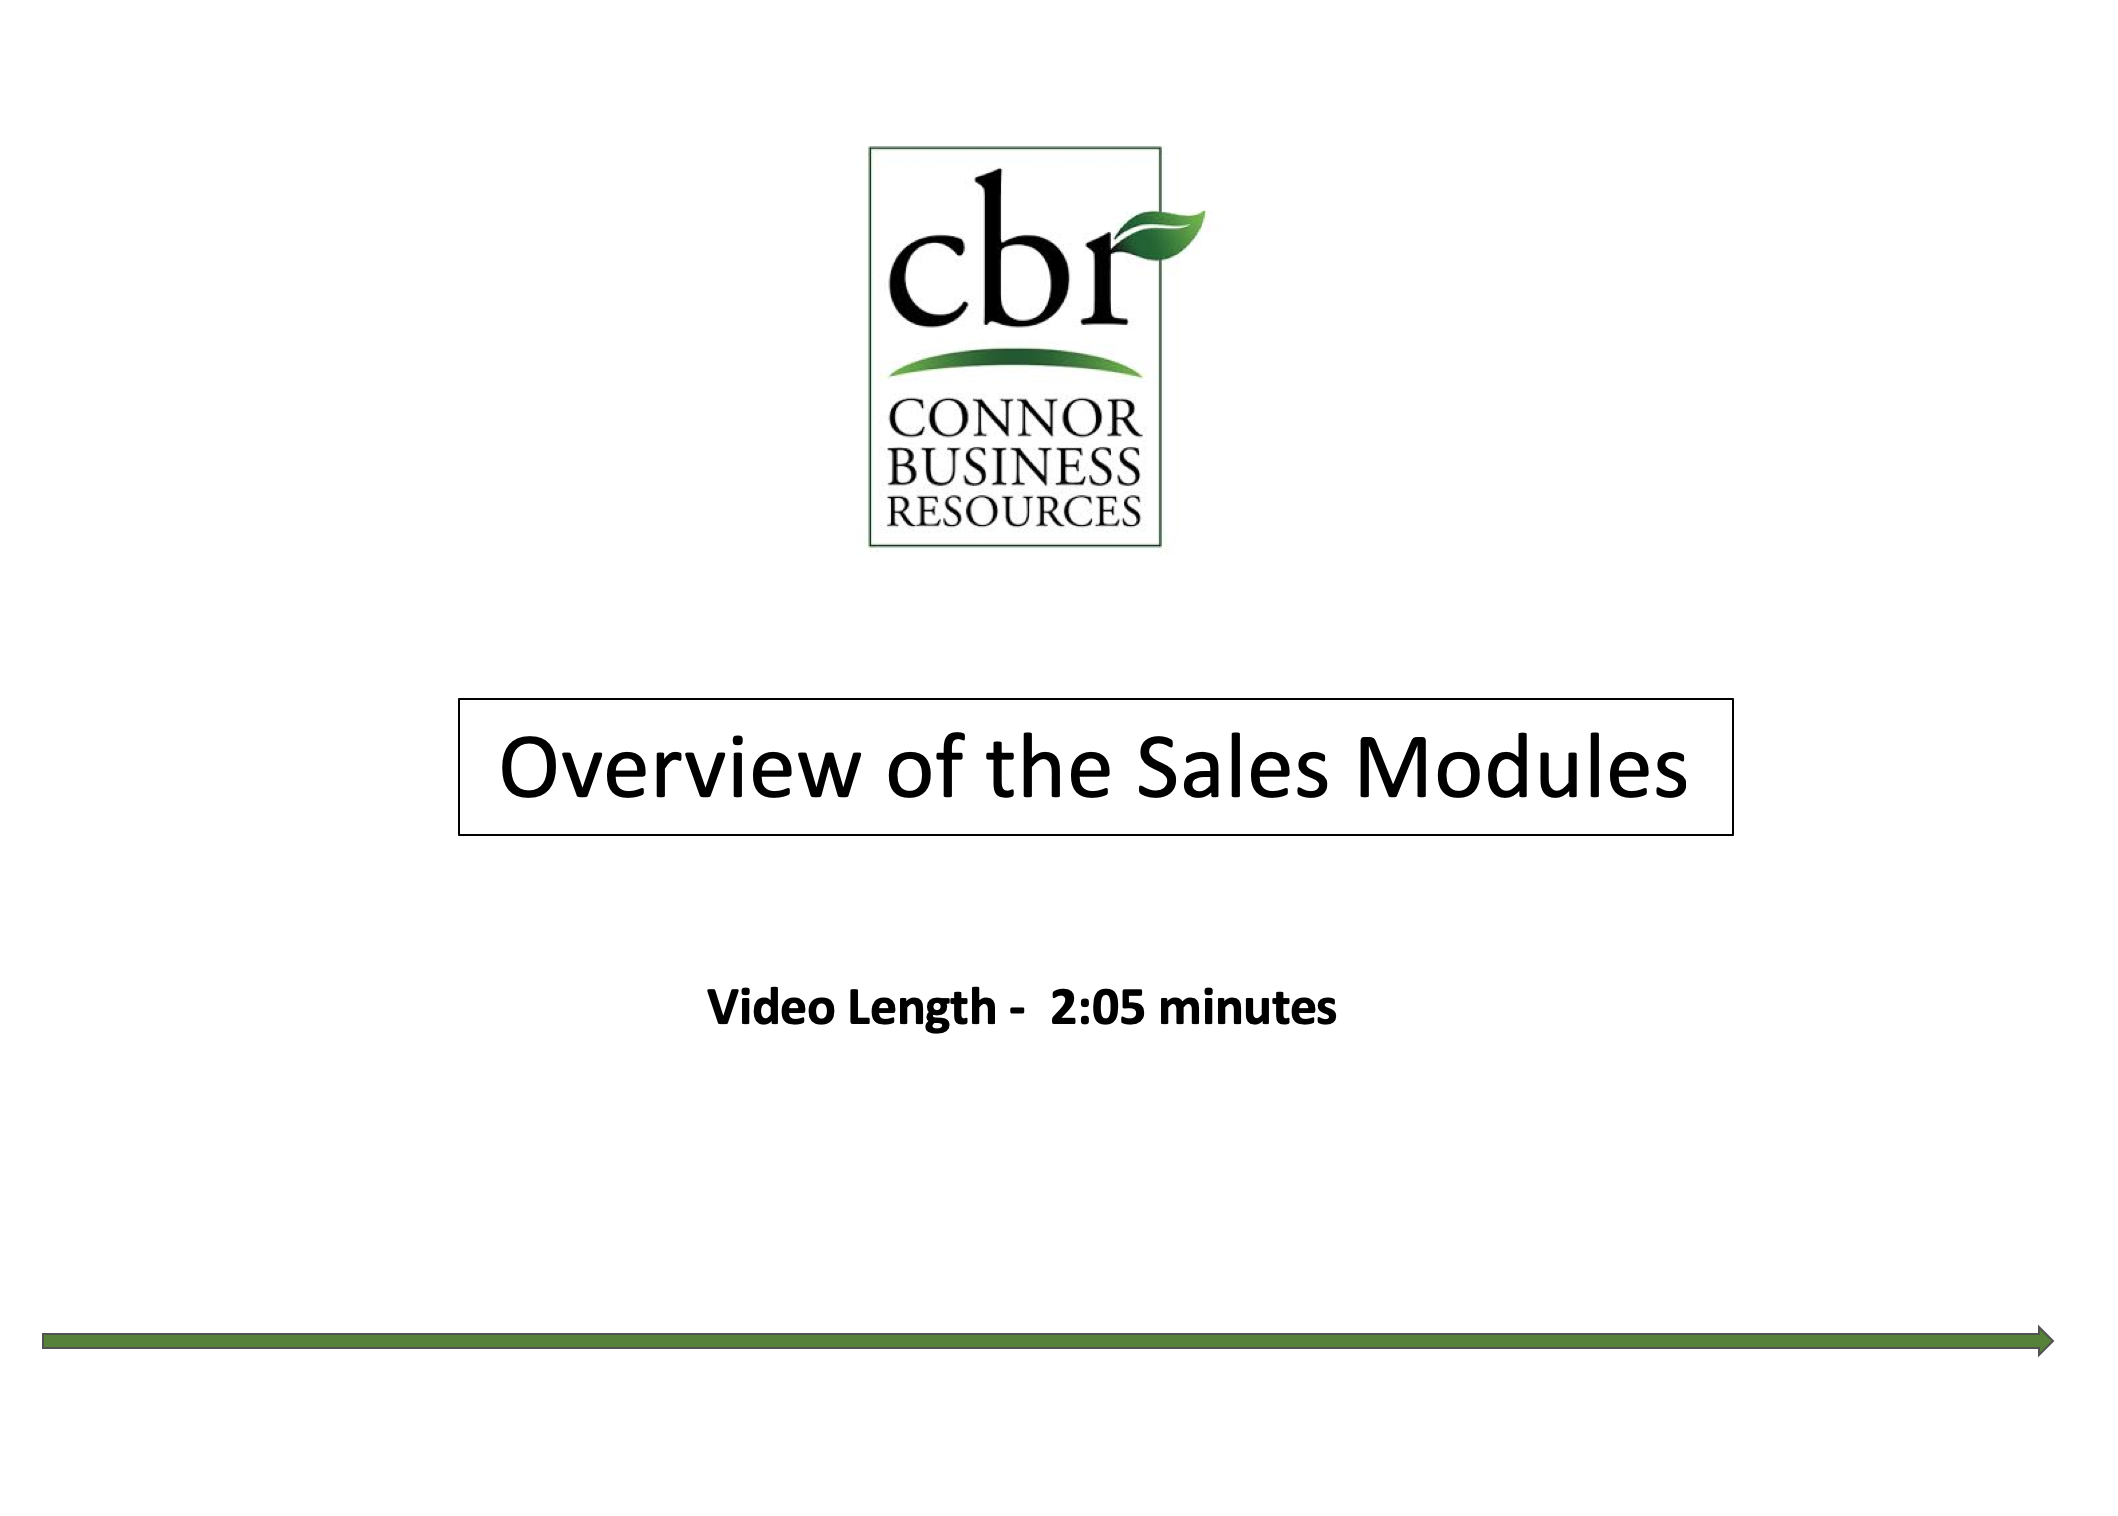 Overview of the Sales Modules